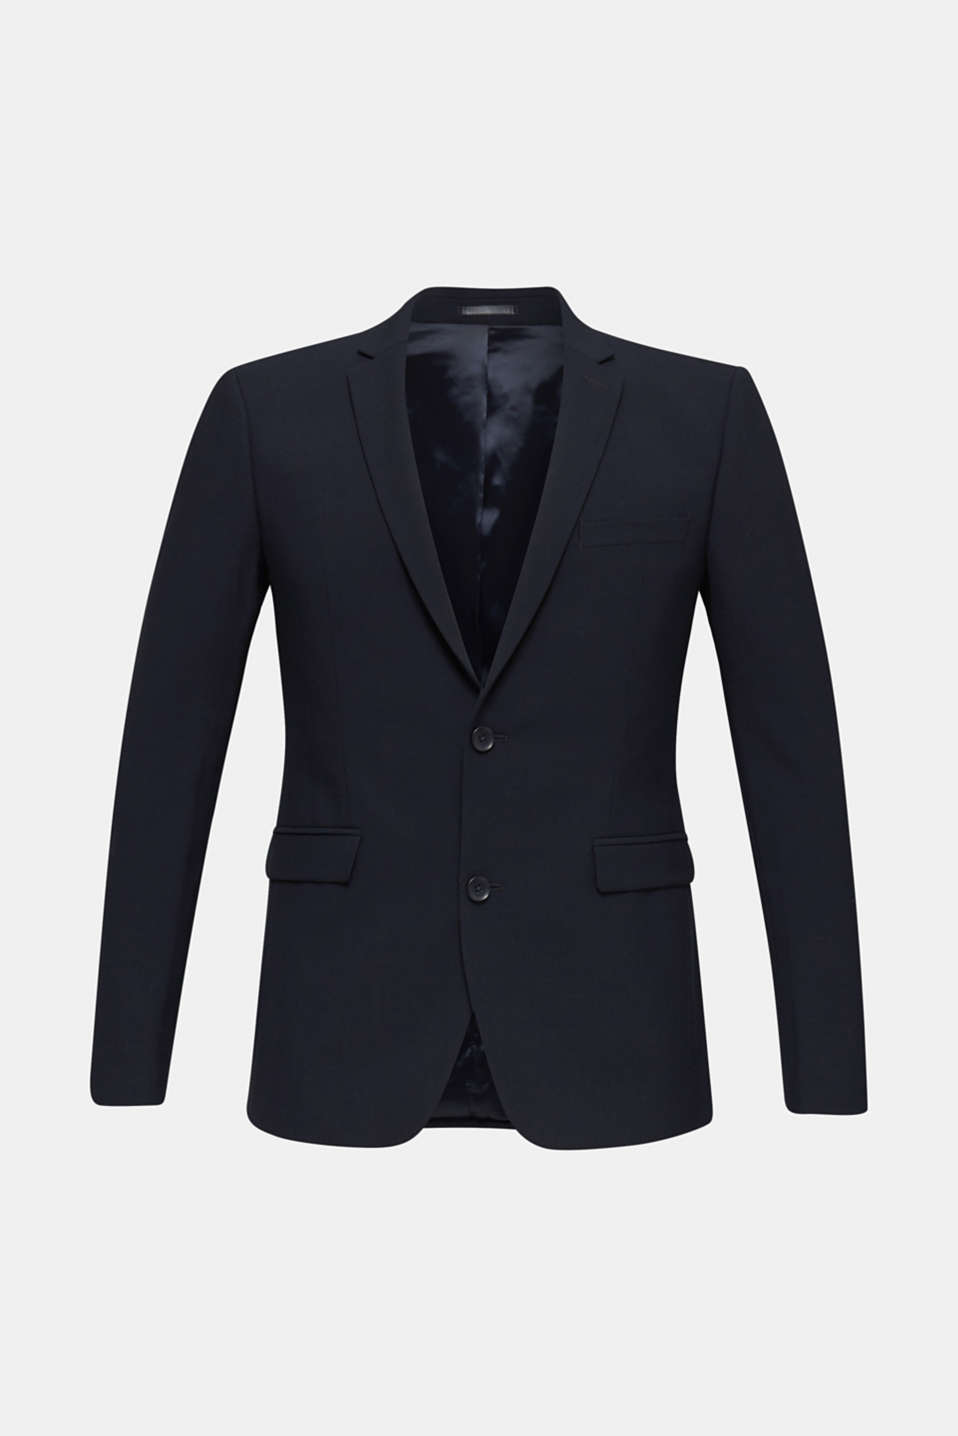 ACTIVE SUIT tailored jacket, wool blend, DARK BLUE, detail image number 6